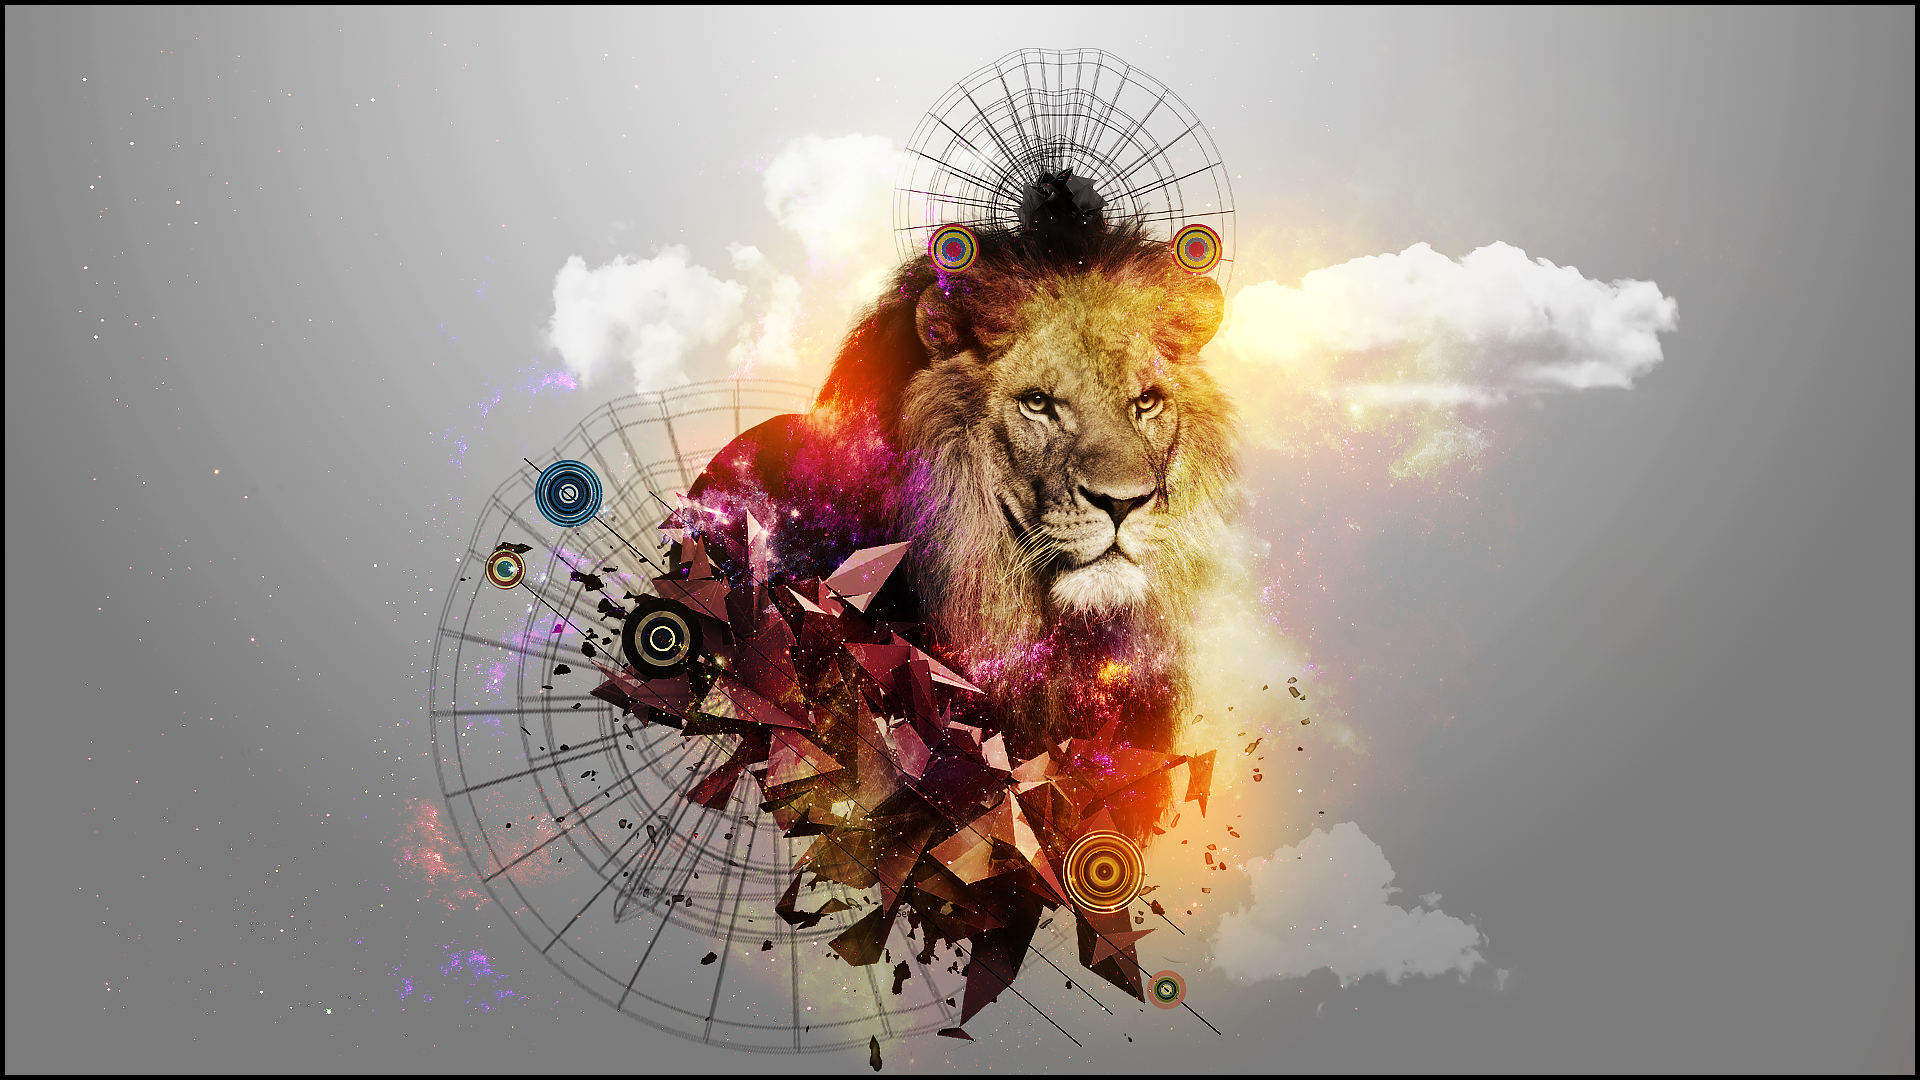 Abstract Lion - 1920 x 1080 Wallpaper by xdeithwenx on ...